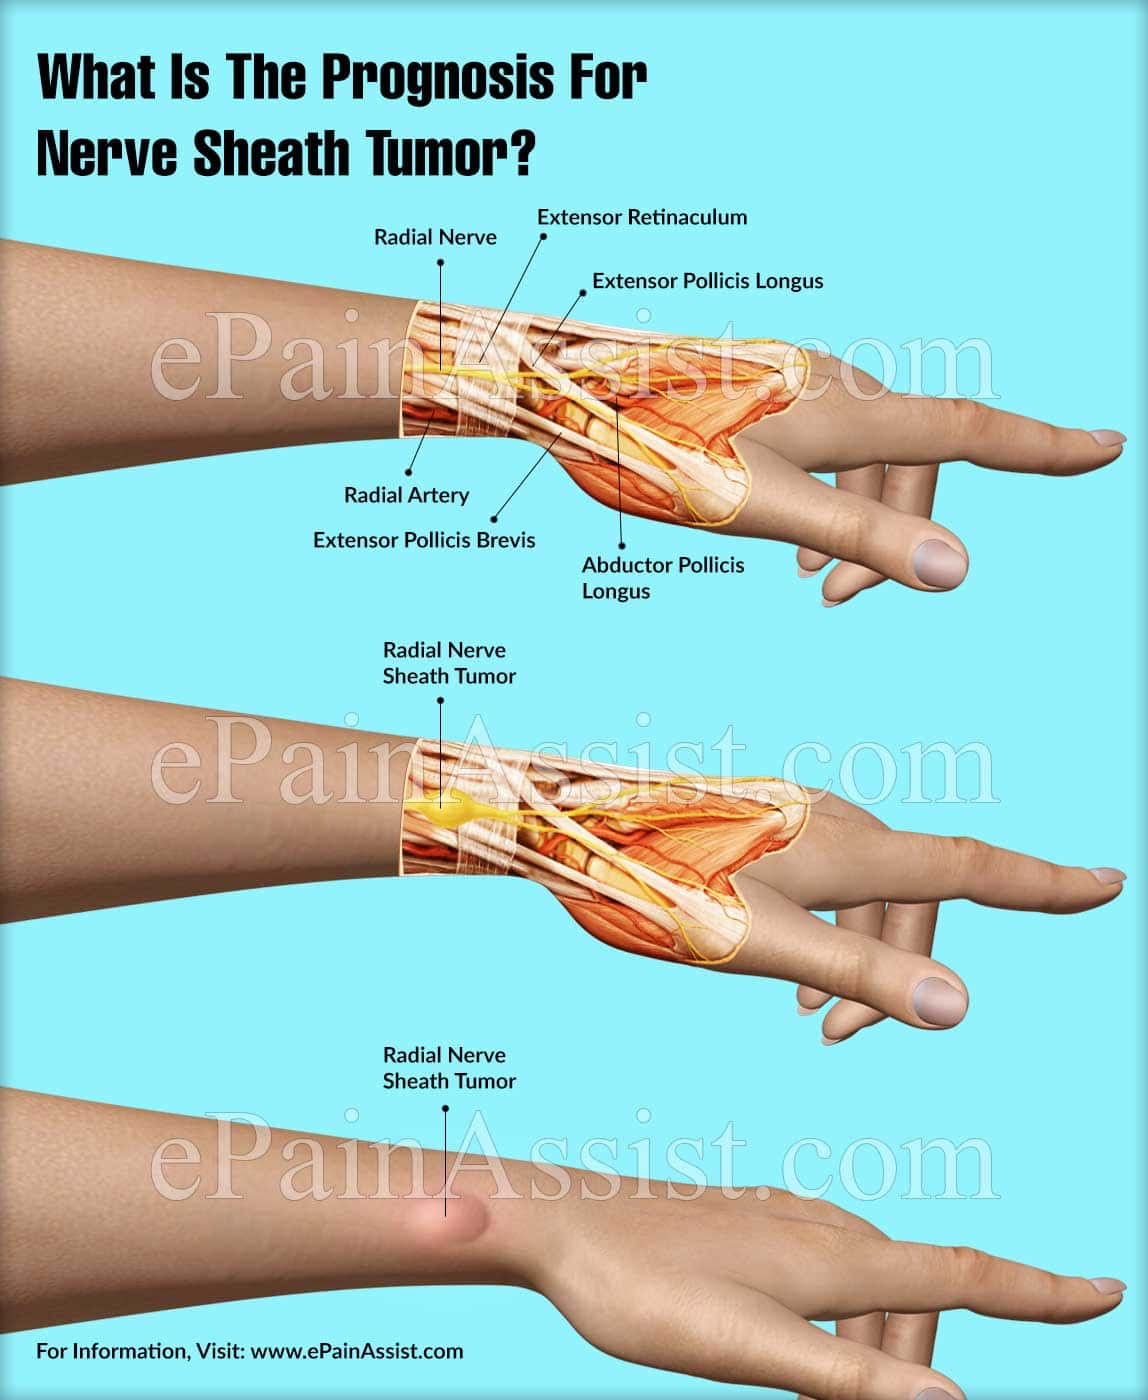 What Is The Prognosis For Nerve Sheath Tumor?